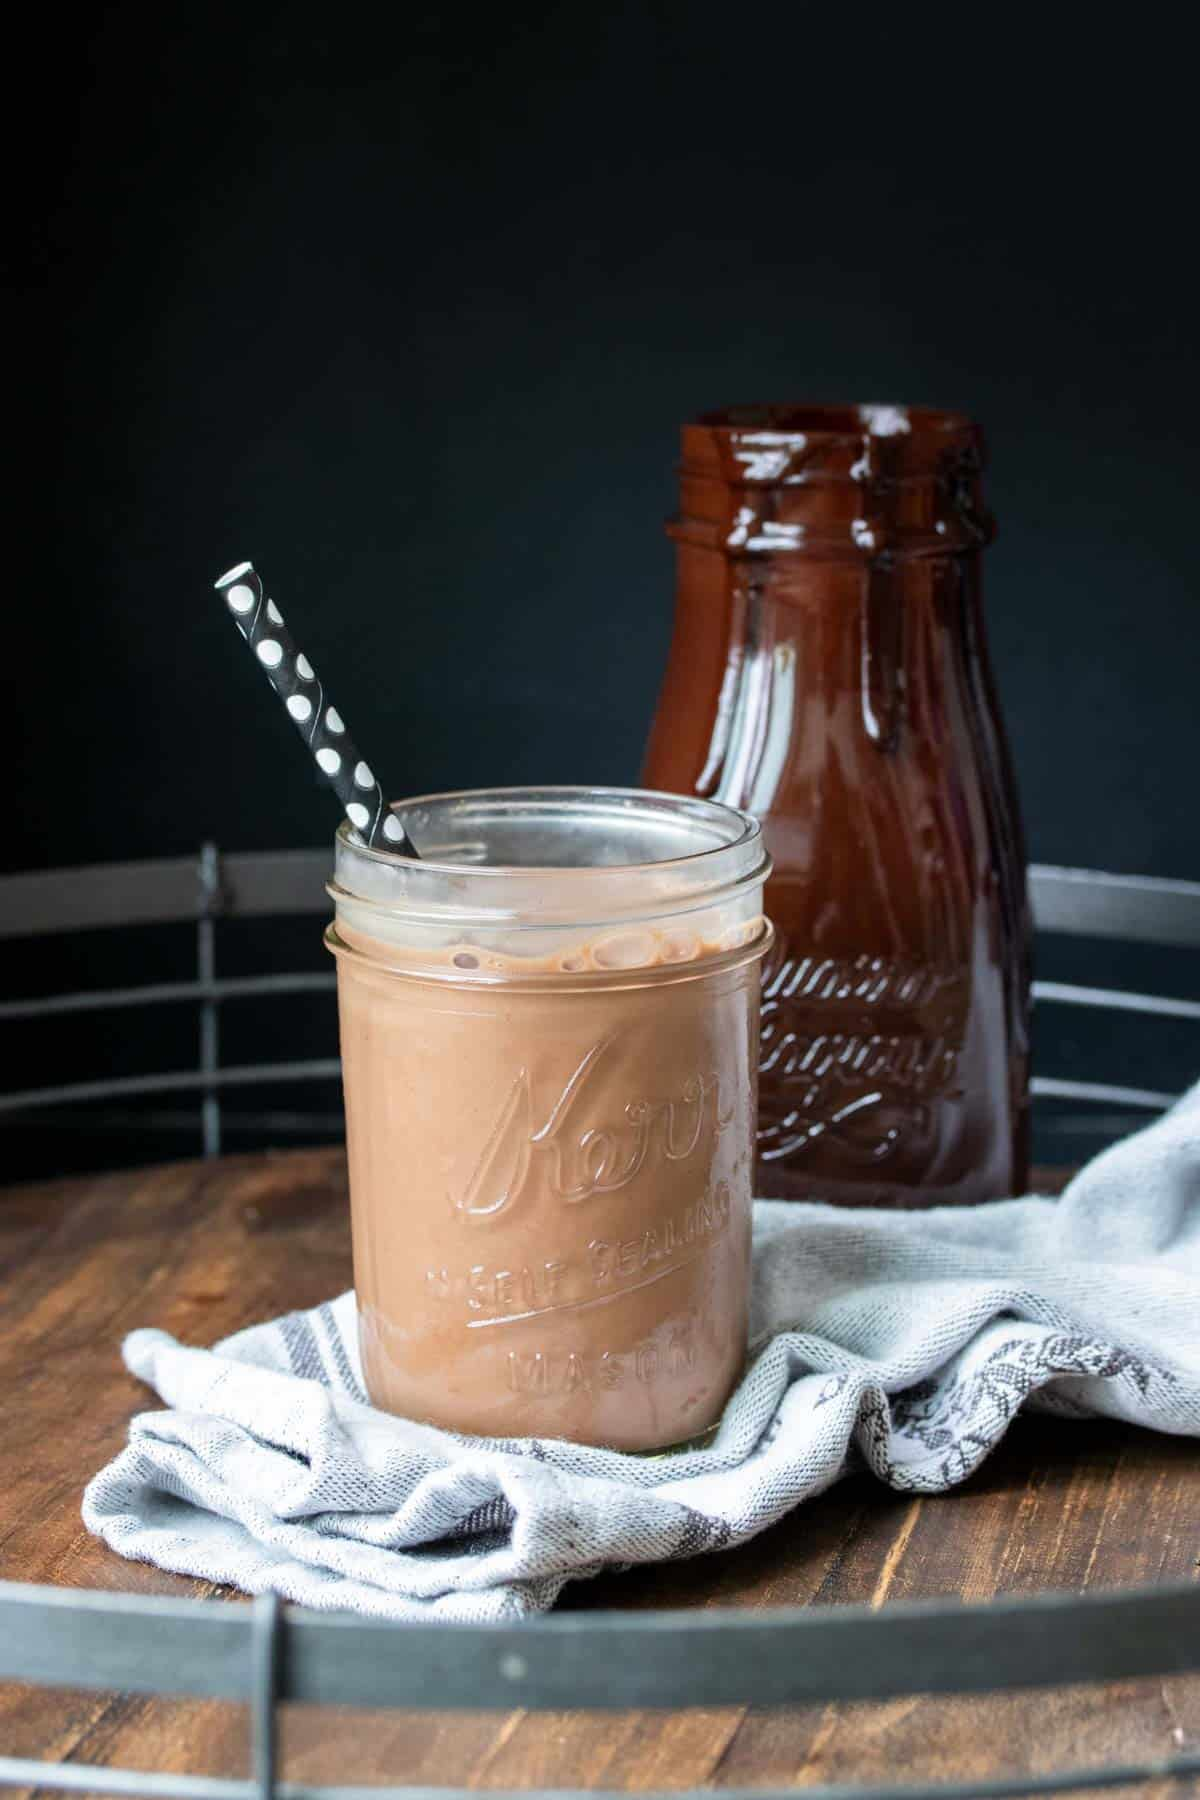 A glass jar filled with chocolate milk and a black straw